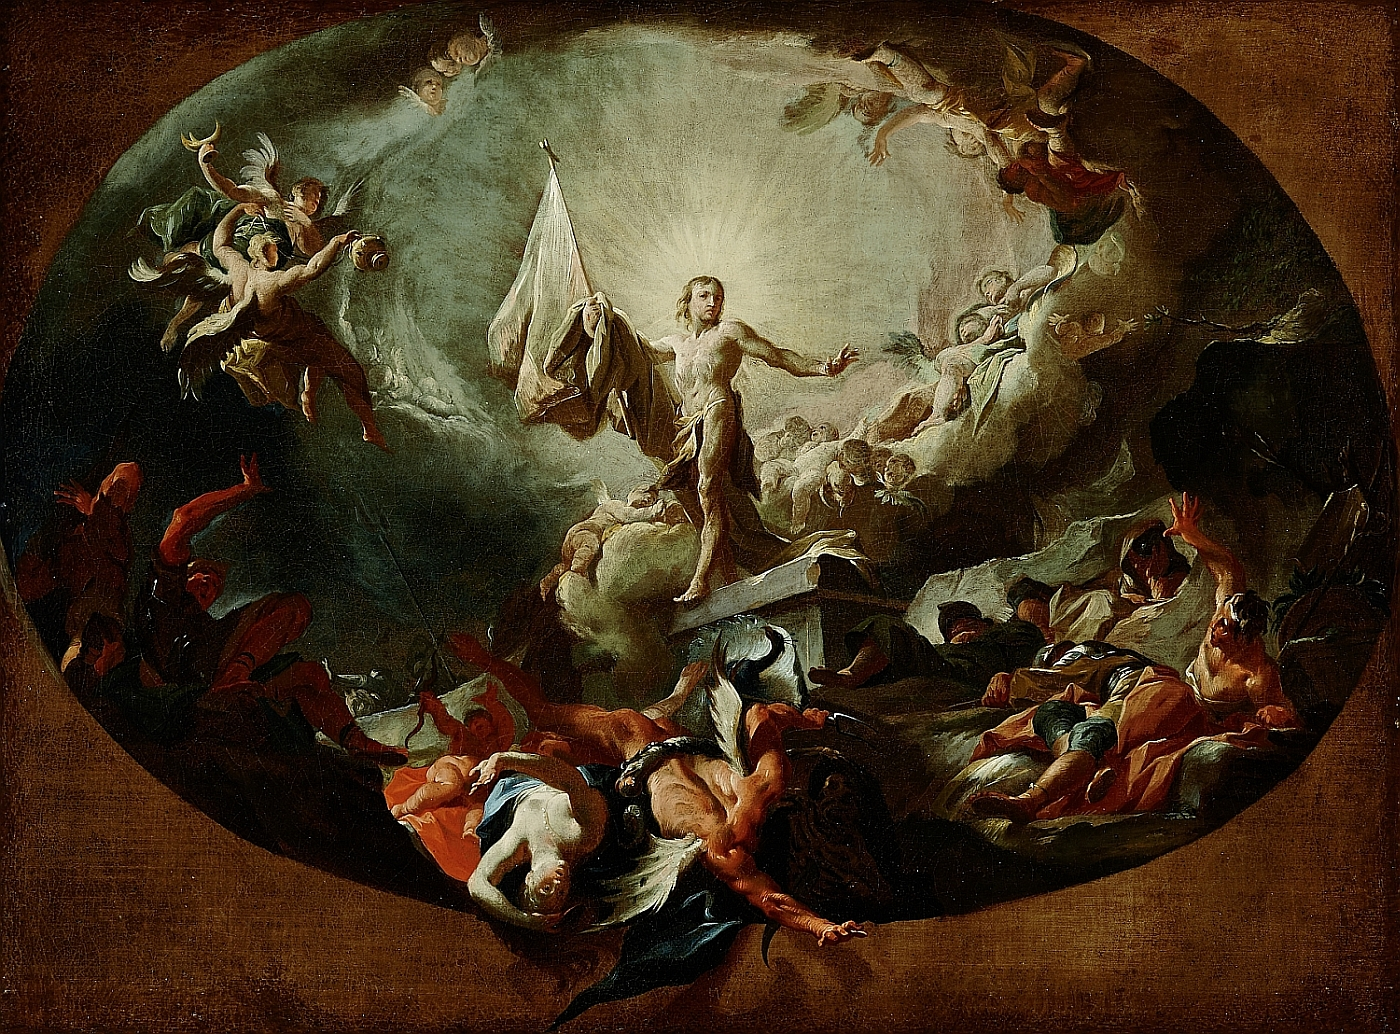 Christ's Resurrection and Victory over Death and Hell, Paul Troger, ca. 1745, oil on canvas, inv. no. RO 0036; probably model for the lost fresco in the cemetery church of St. Niklas in Vienna